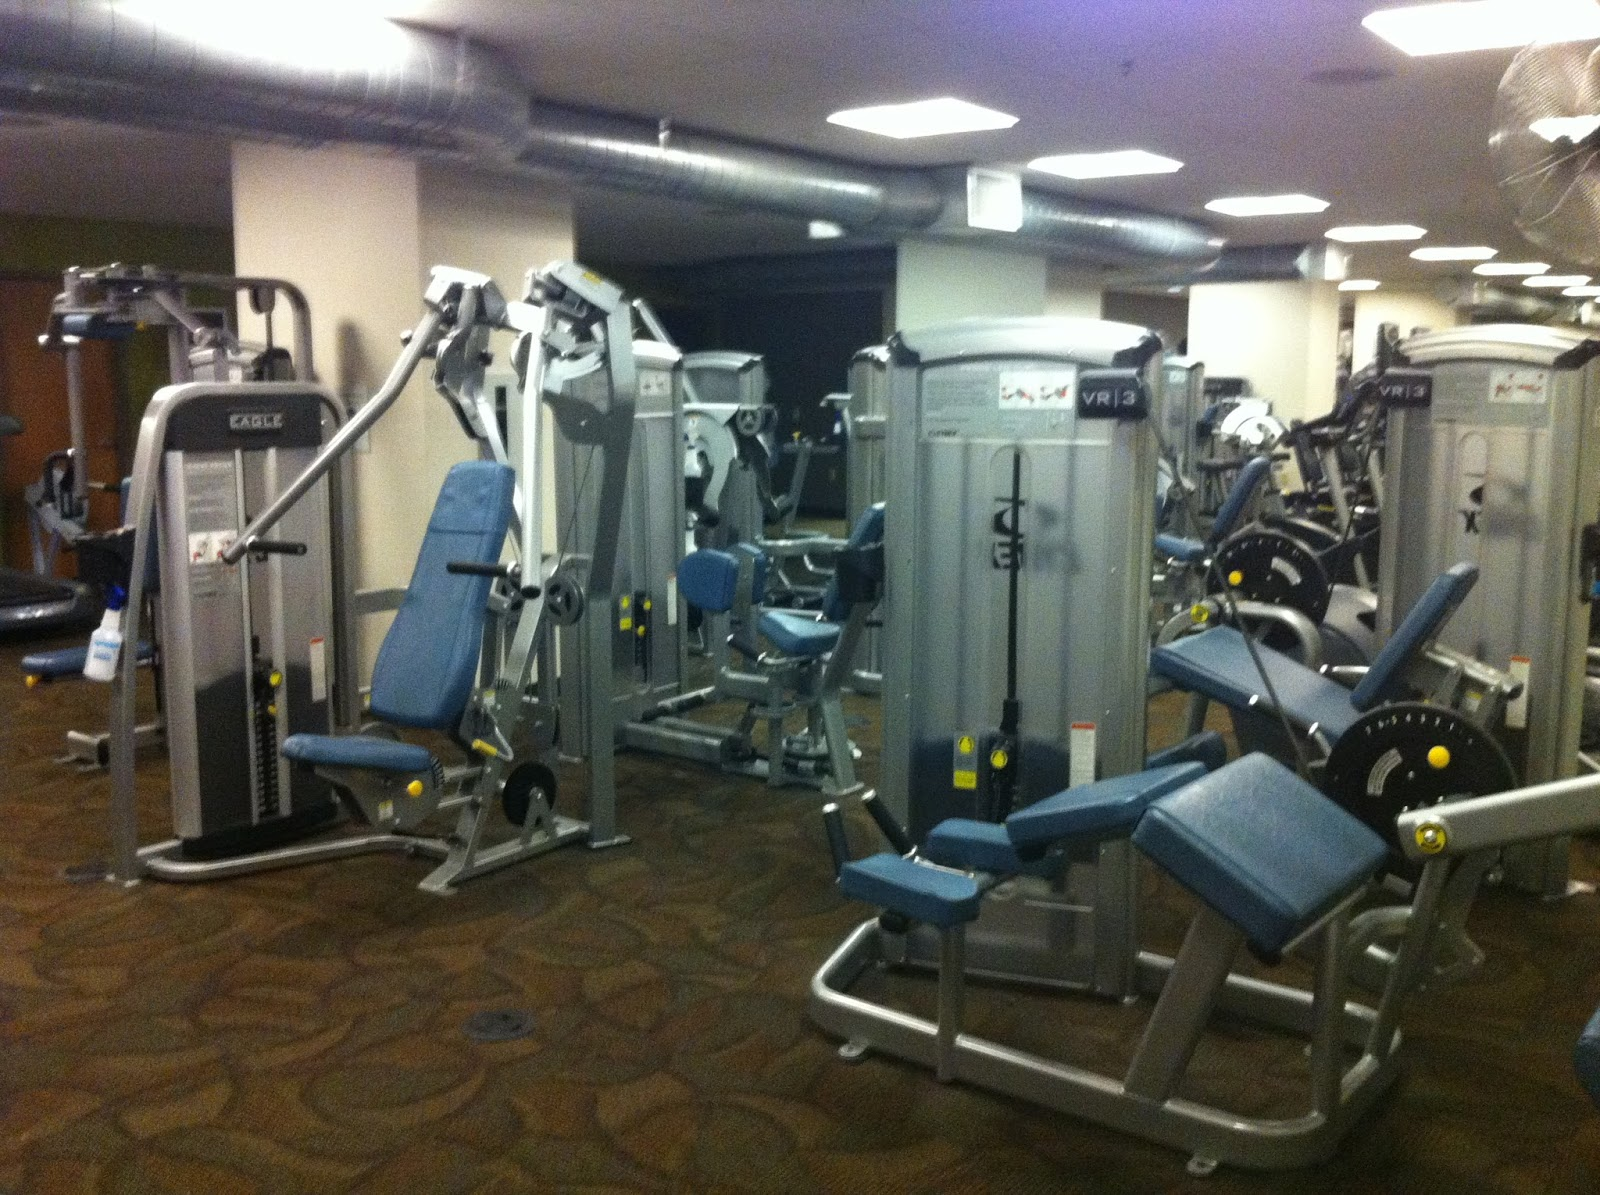 Working Out In Seattle: Seattle Executive Fitness: Removed ...